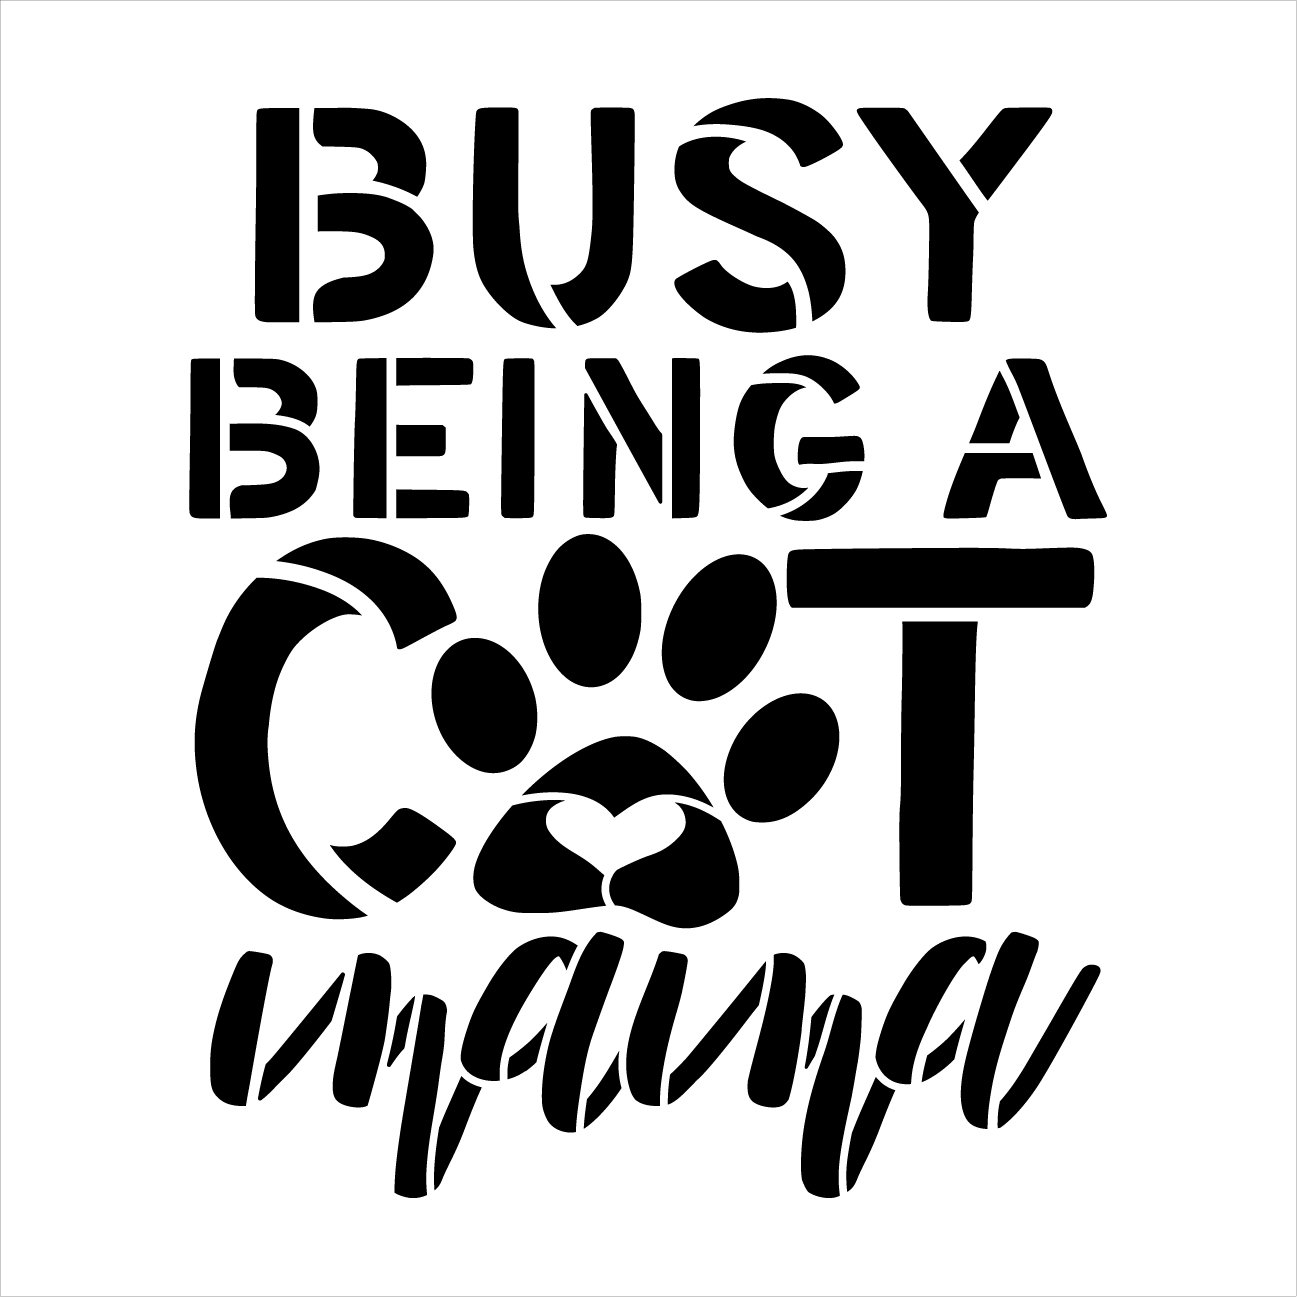 Busy Being a Cat Mama by StudioR12 | Craft DIY Pet Kitty Pawprint Home Decor | Paint Animal Lover Wood Sign | Reusable Mylar Template | Select Size